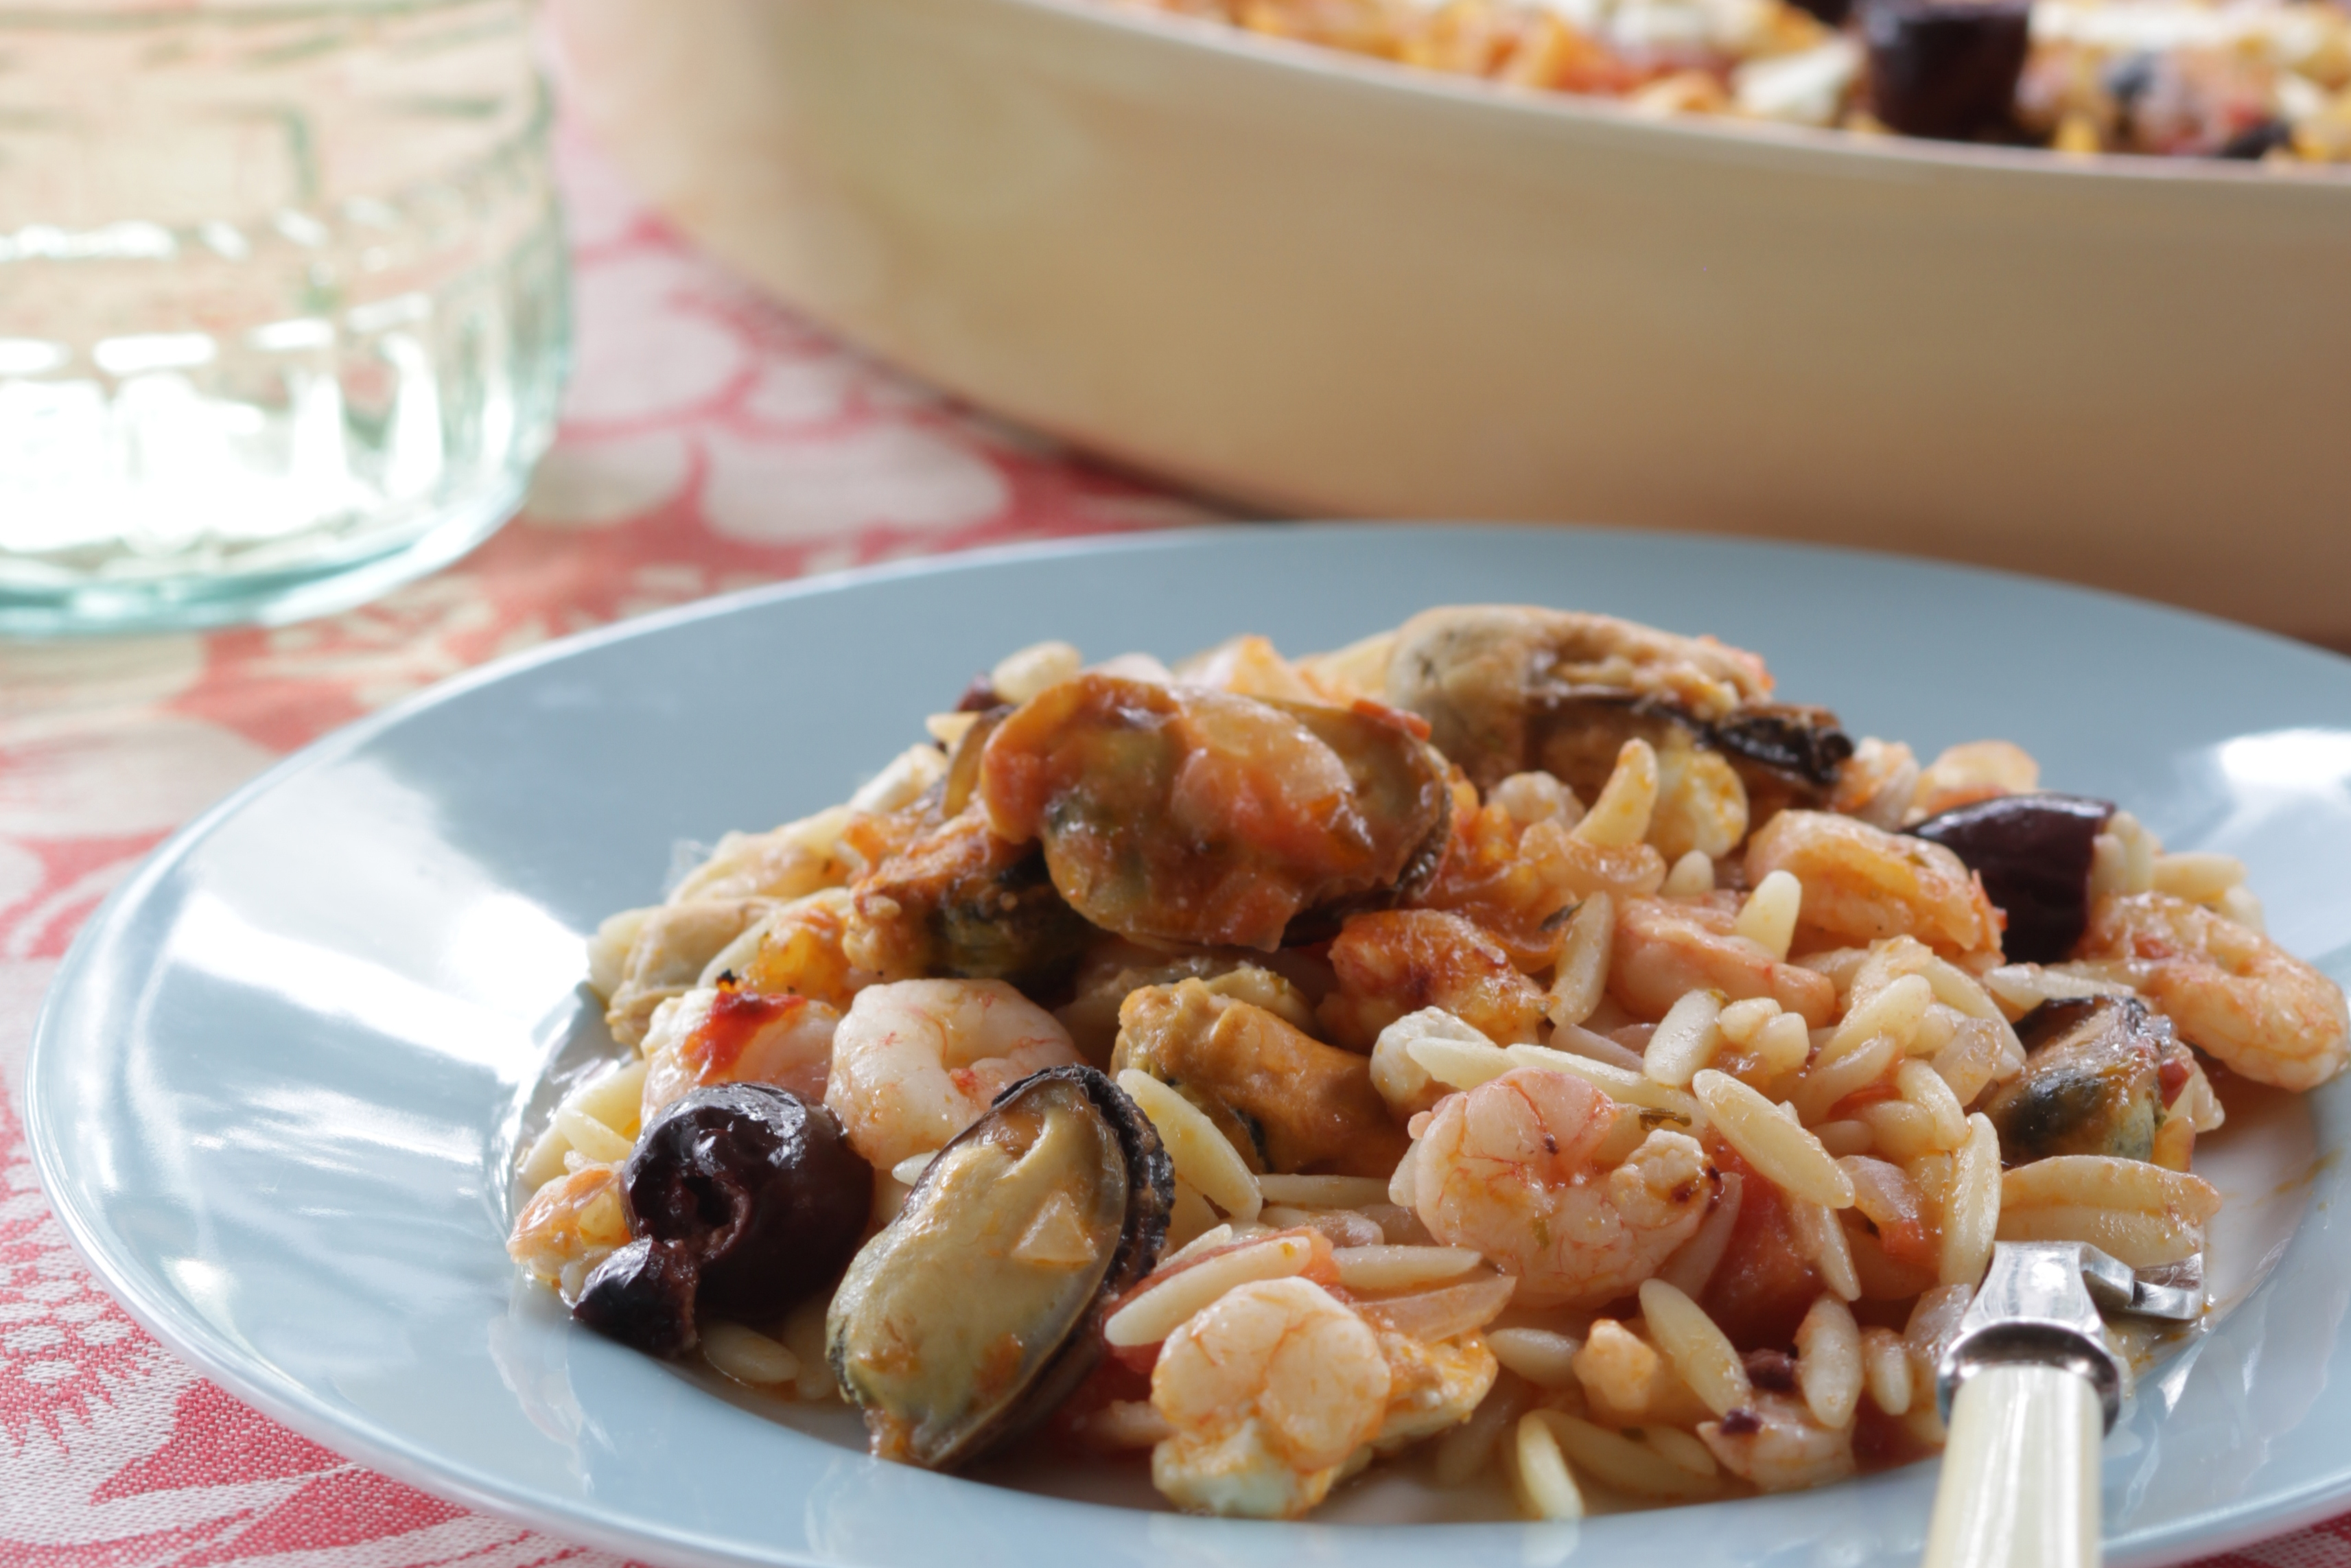 Baked-Seafood-Orzo-with-Kalamata-Olives